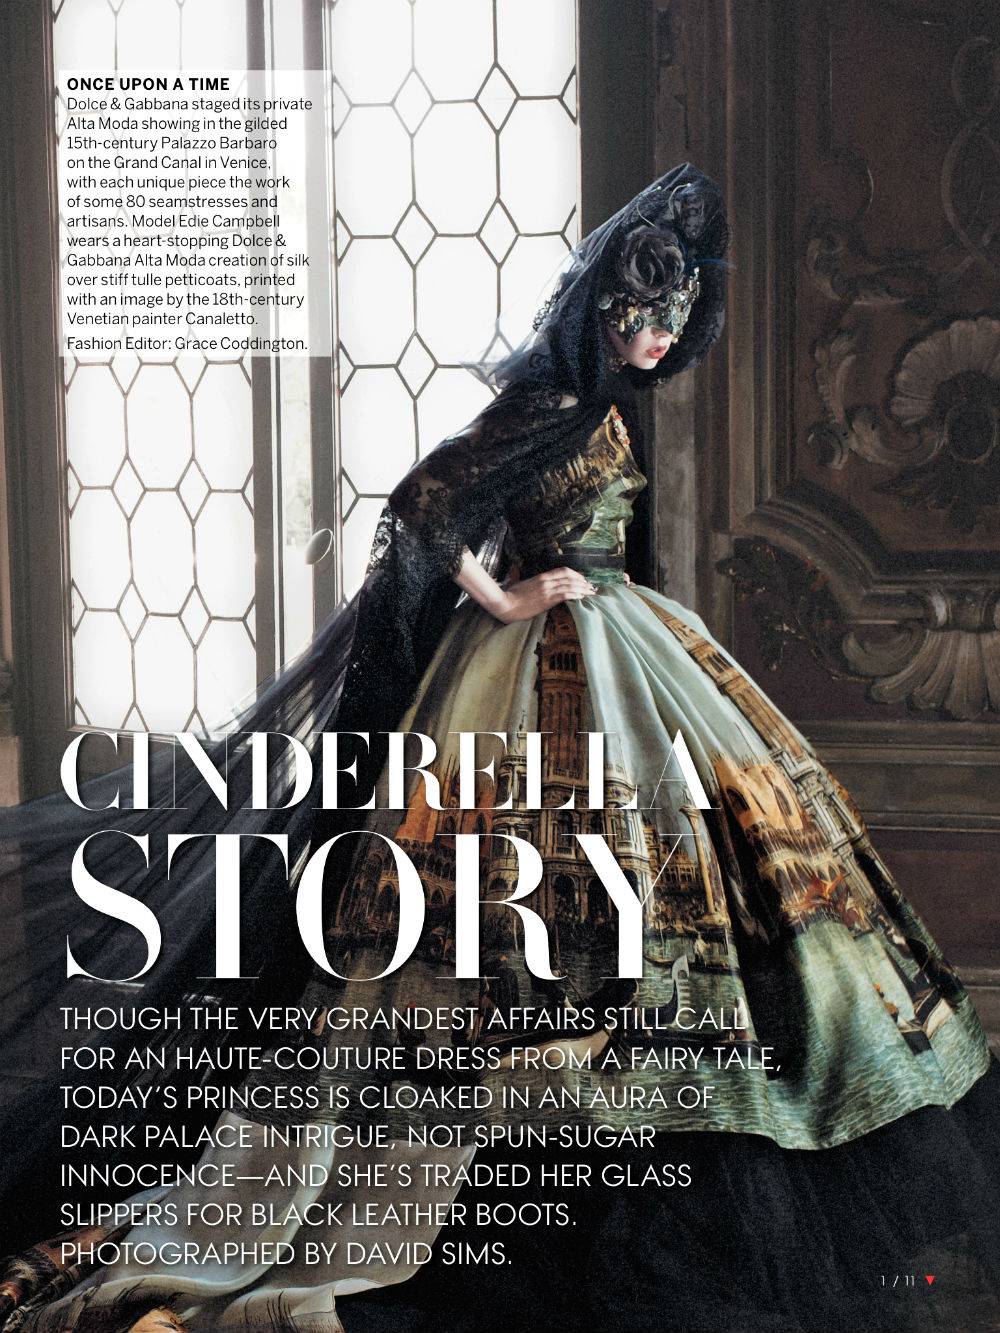 cinderella story 2013 Watch a cinderella story: if the shoe fits online a cinderella story: if the shoe fits full movie with english subtitle stars: sven ruygrok, jennifer tilly, sofia carson, chloe perrin, thomas law, david ury, amy louise wilson, mark elderkin.